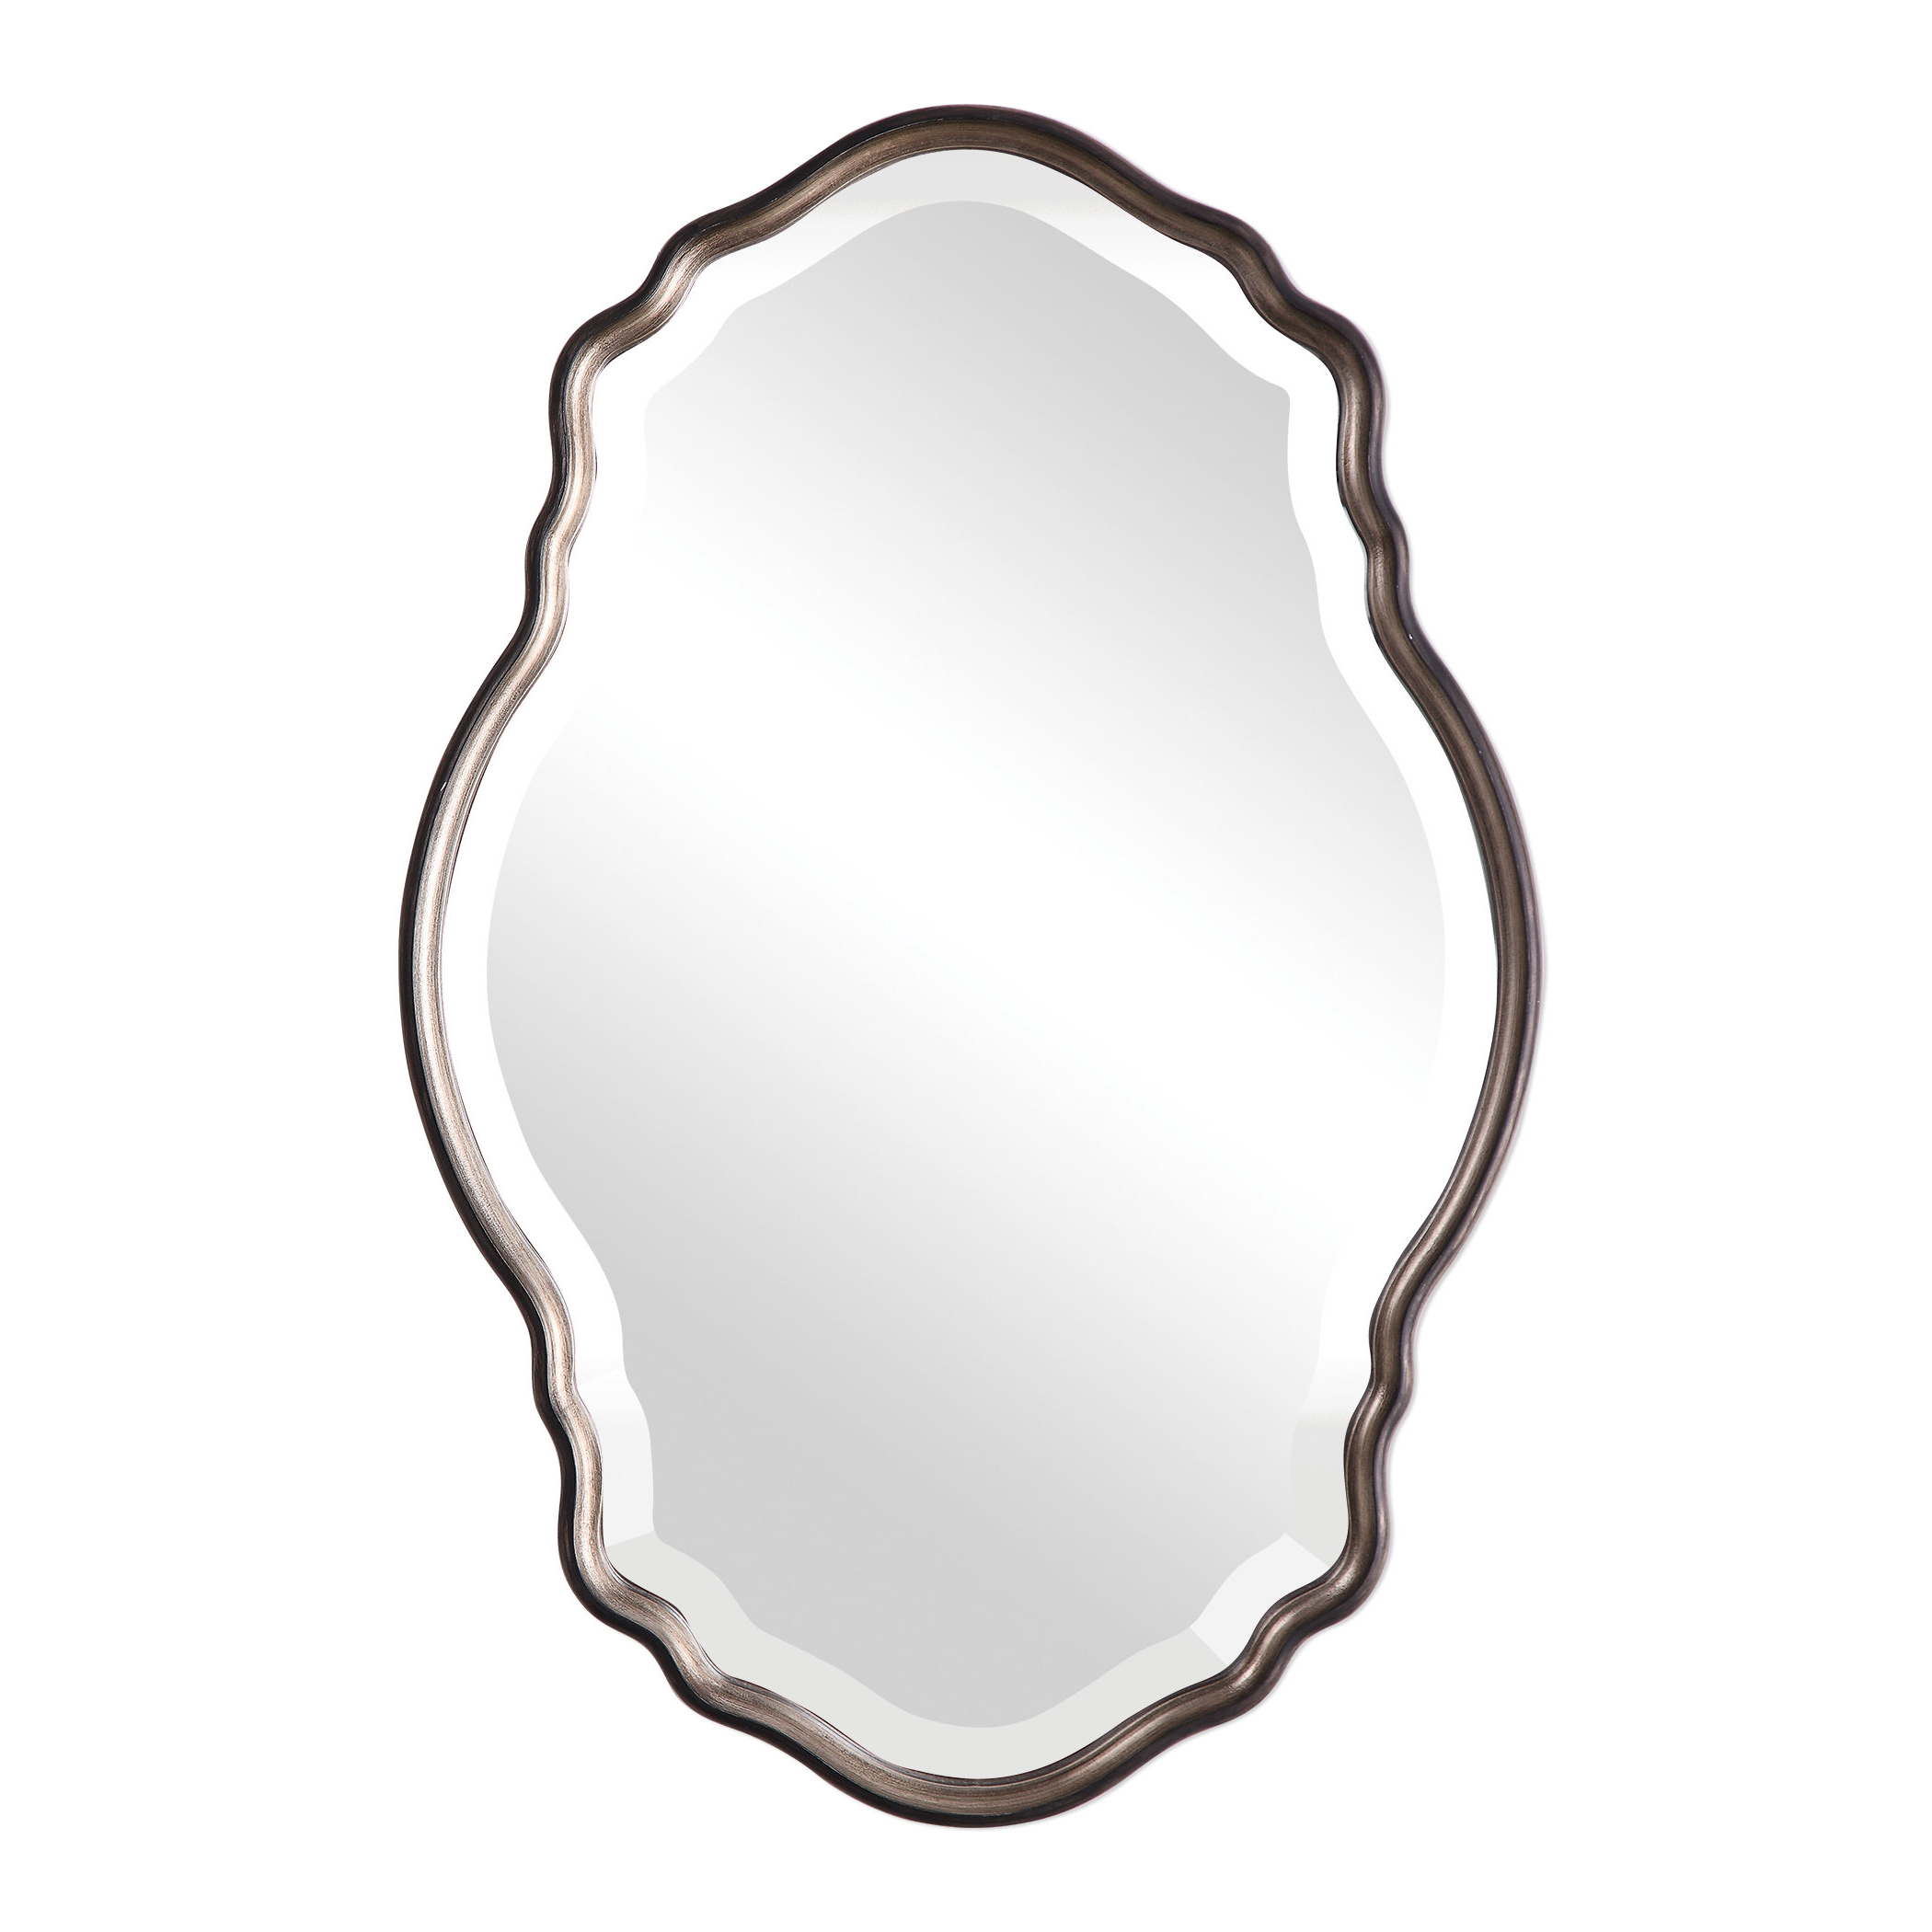 Preferred Modern & Contemporary Beveled Wall Mirrors Regarding Christner Modern & Contemporary Beveled Wall Mirror (Gallery 11 of 20)